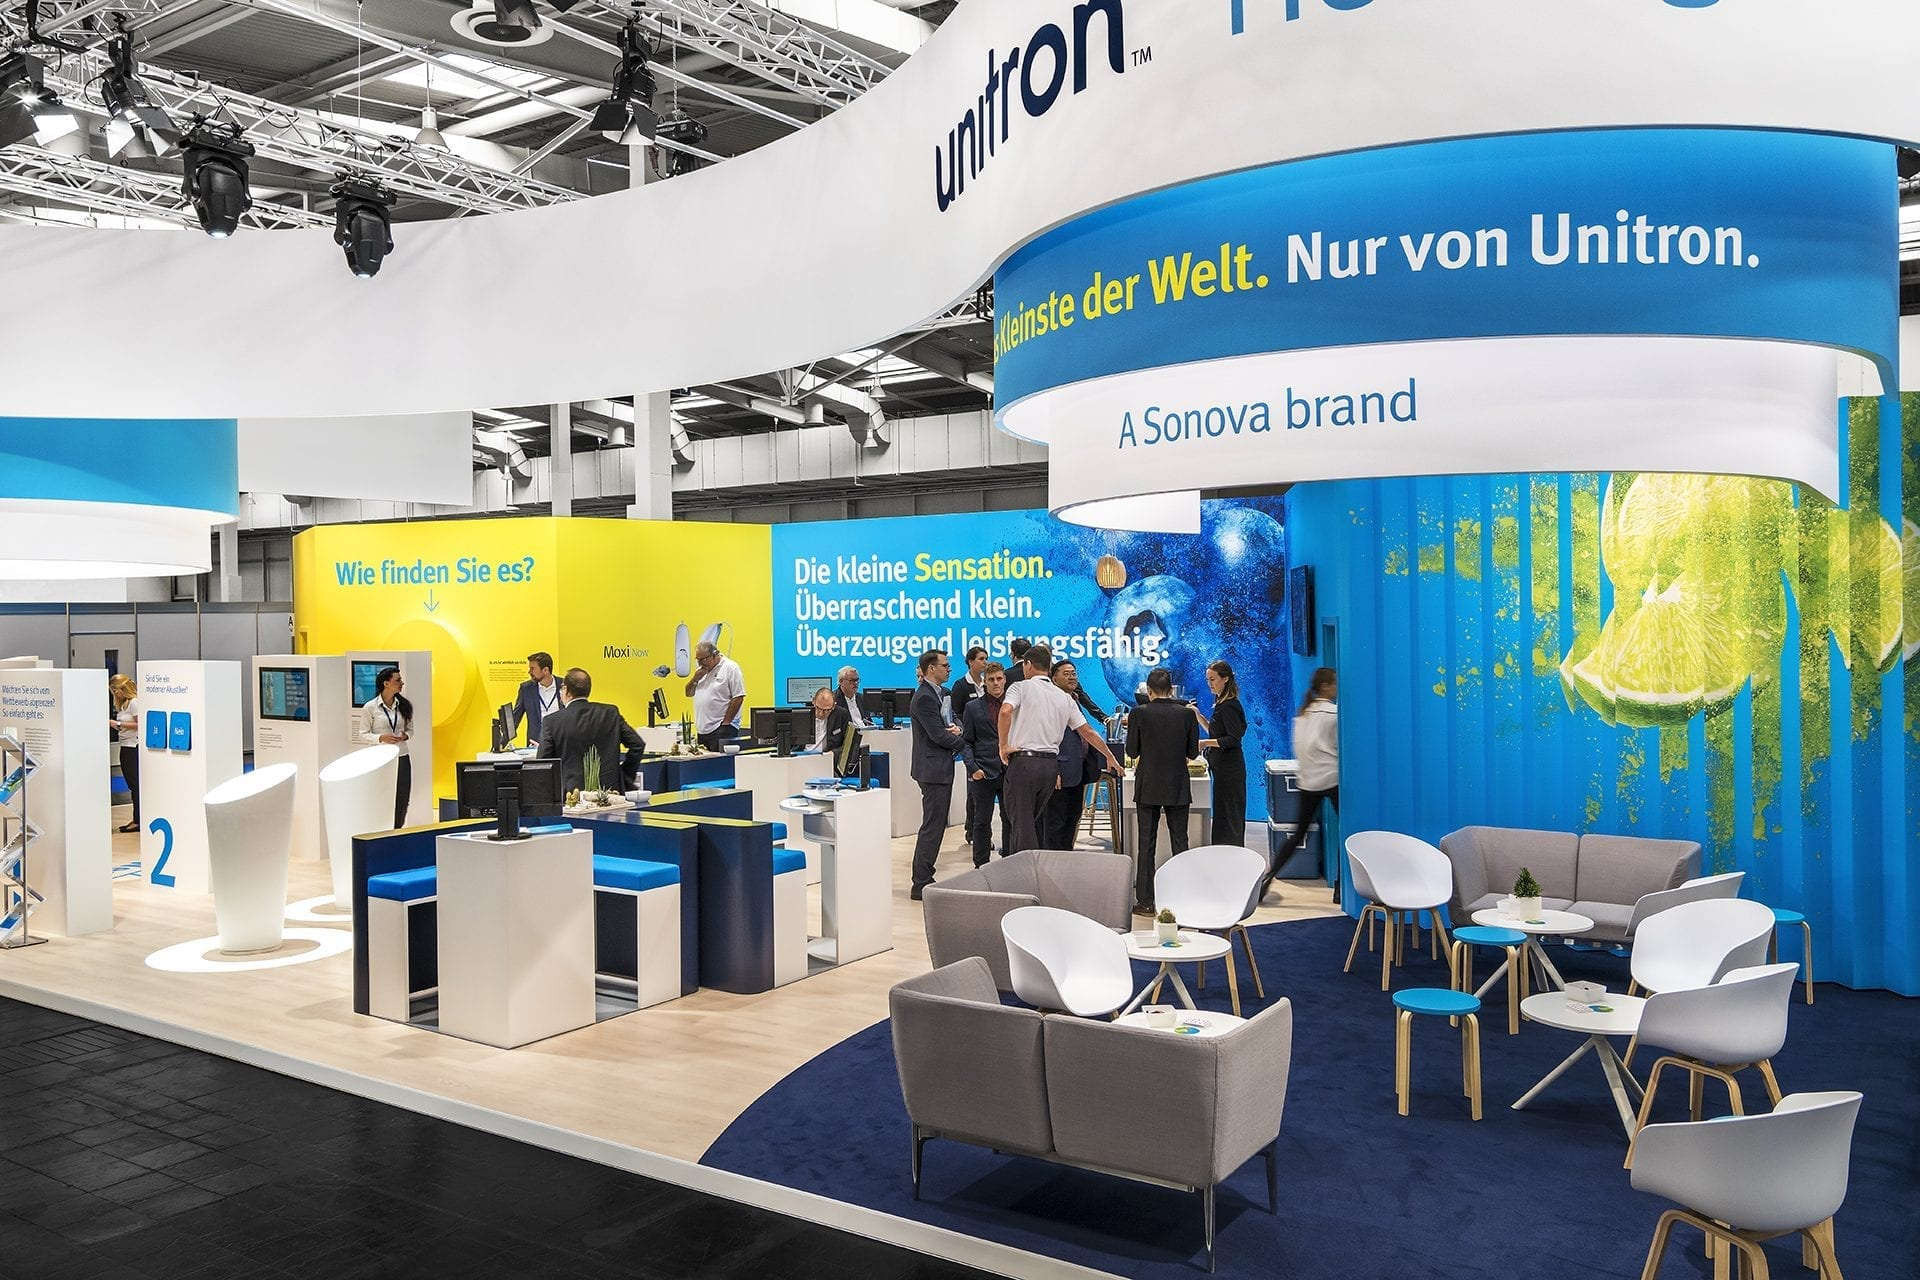 Unitron Moxi Now EUHA trade show booth